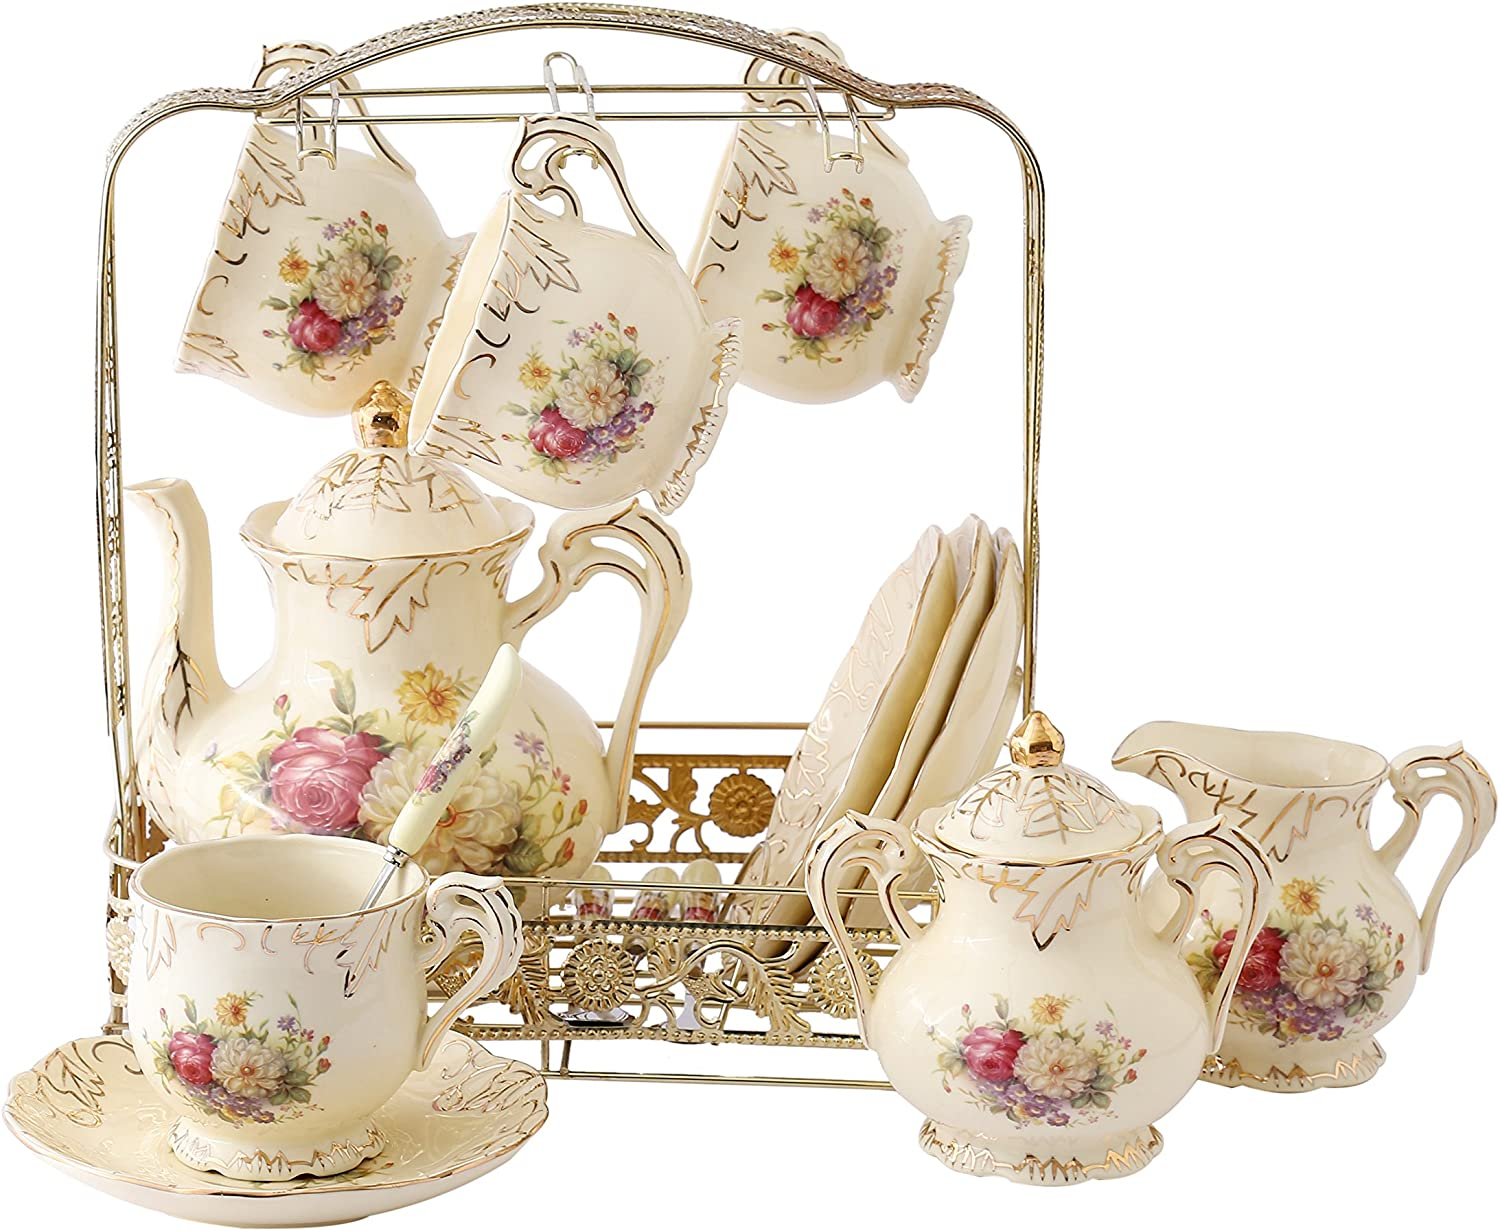 ufengke 11 Piece Creative European Tea NEW before selling ☆ Porcela Limited Special Price Luxury Ivory Set